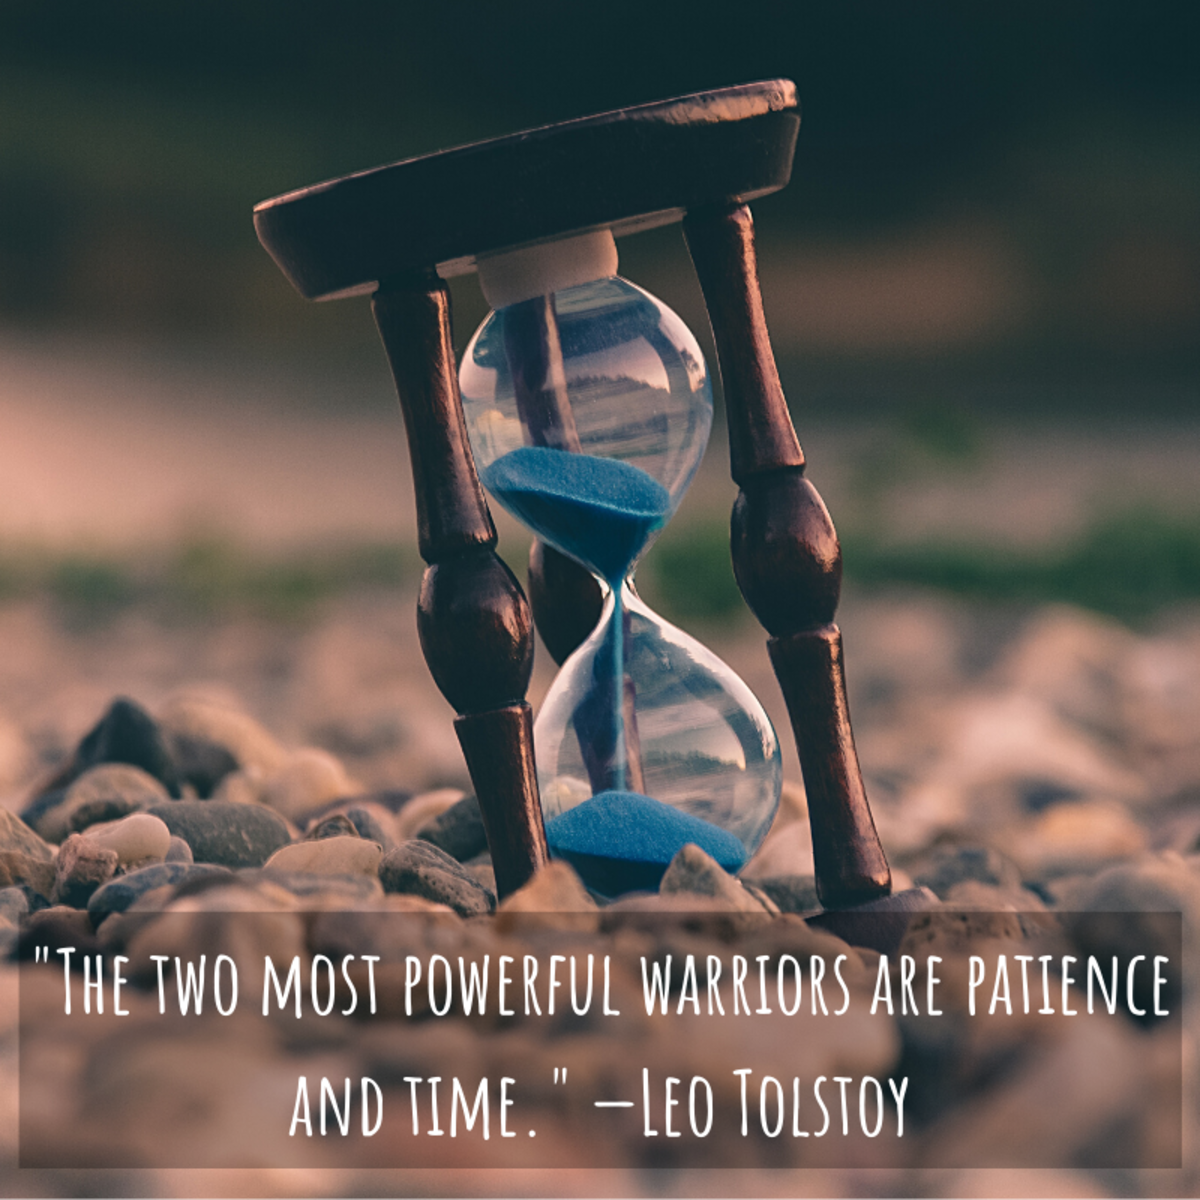 """The two most powerful warriors are patience and time."" —Leo Tolstoy"